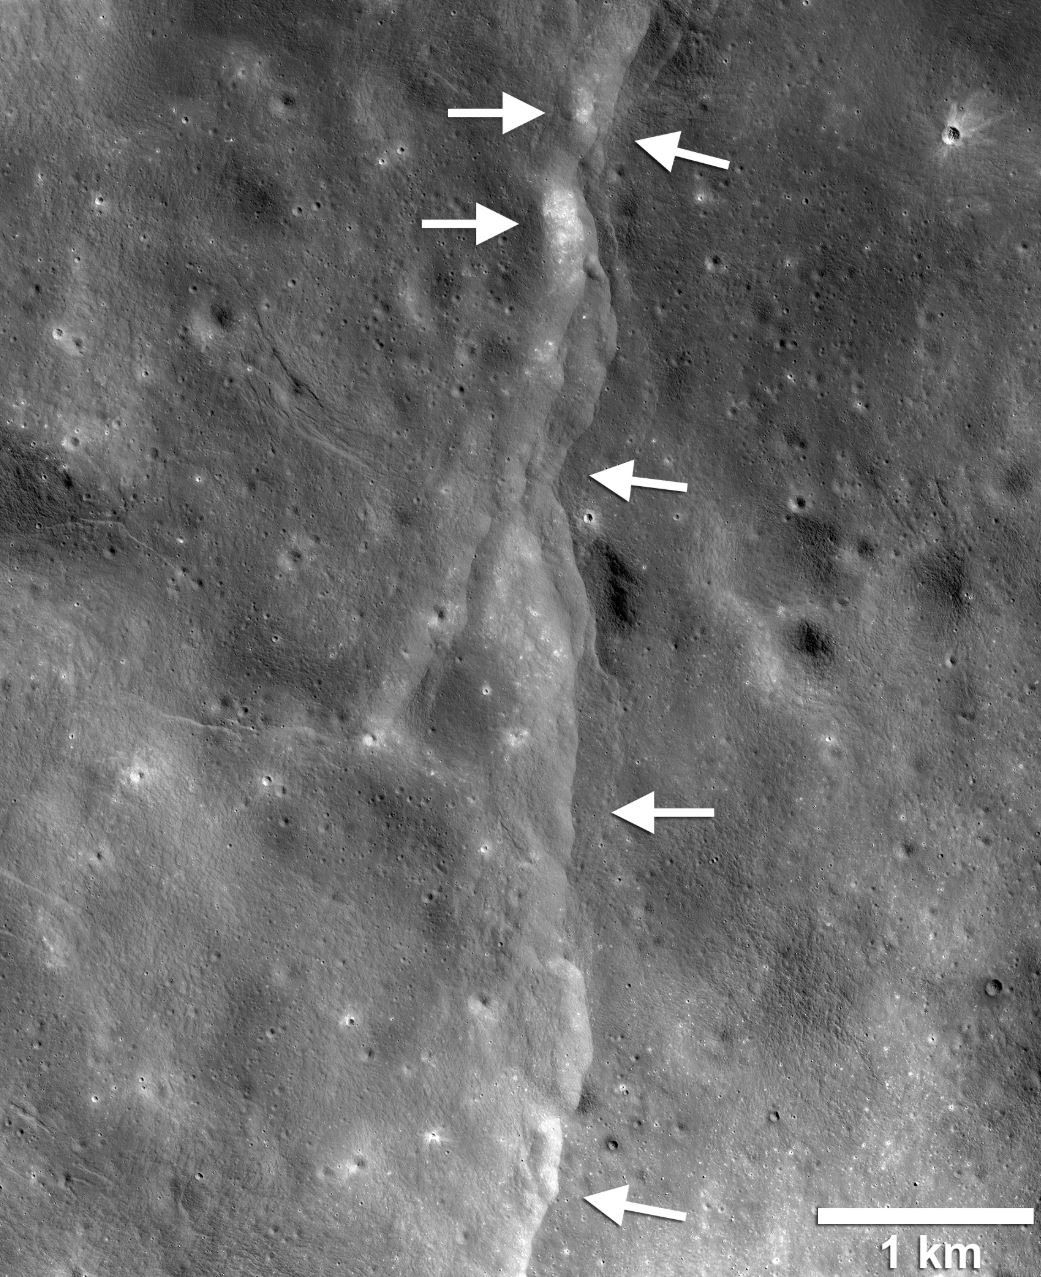 This prominent lunar lobate thrust fault scarp is one of thousands discovered in Lunar Reconnaissance Orbiter Camera (LROC) images. The fault scarp or cliff is like a stair-step in the lunar landscape (left-pointing white arrows) formed when the near-surface crust is pushed together, breaks, and is thrust upward along a fault as the Moon contracts. Boulder fields, patches of relatively high bright soil or regolith, are found on the scarp face and back scarp terrain (high side of the scarp, right-pointing arrows). Image LROC NAC frame M190844037LR. - Image Credit: NASA/GSFC/Arizona State University/Smithsonian - (click to enlarge)